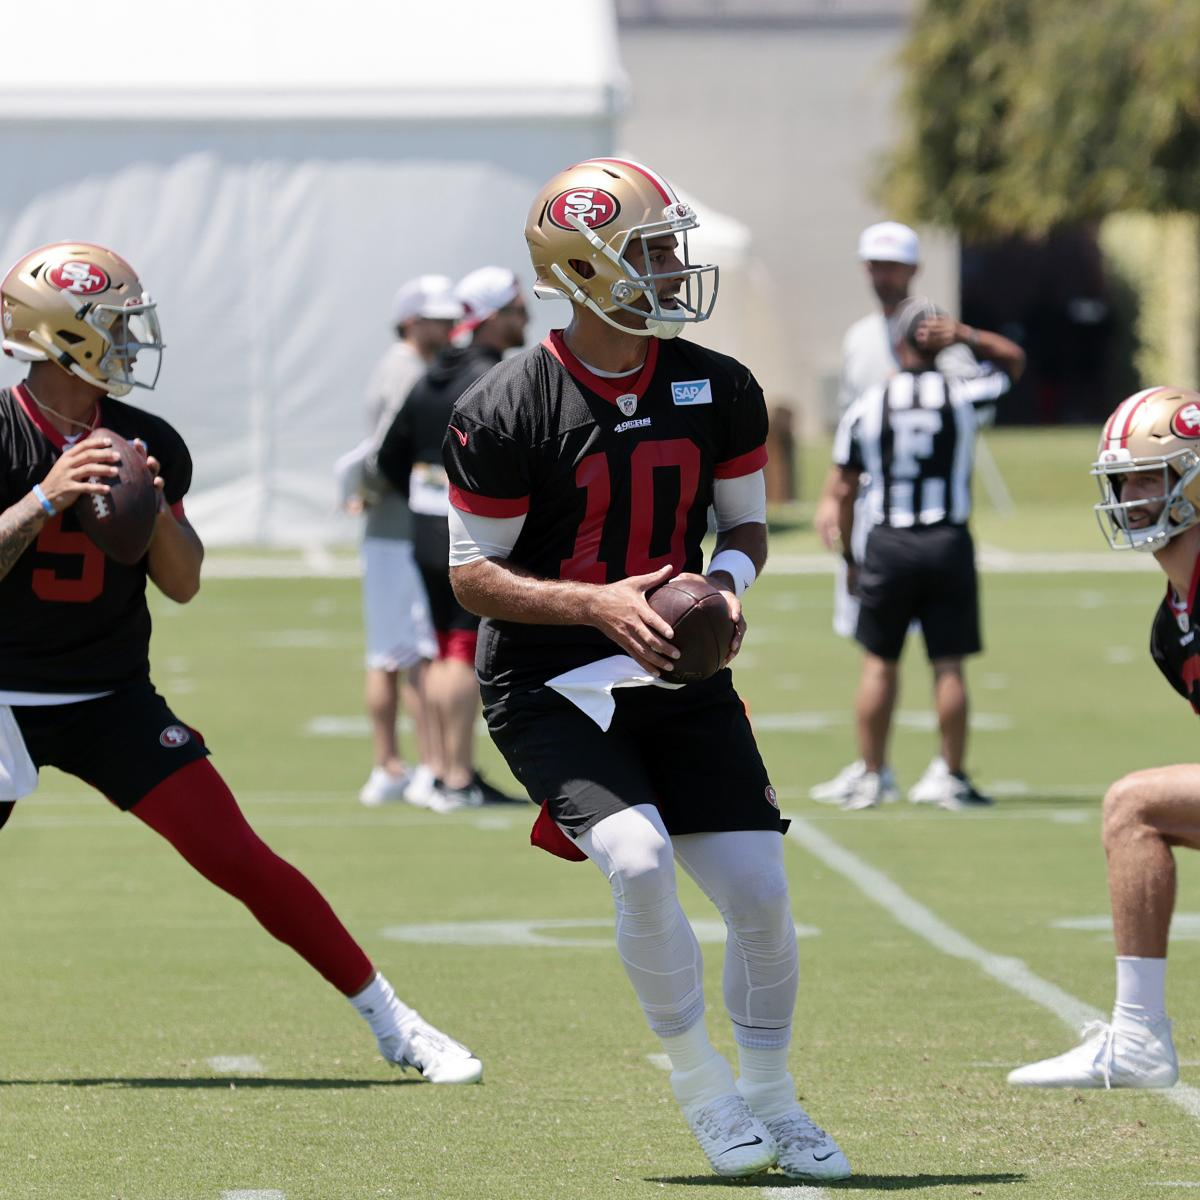 Fantasy Football 2021: Most Pivotal Position Battles of NFL Training Camps